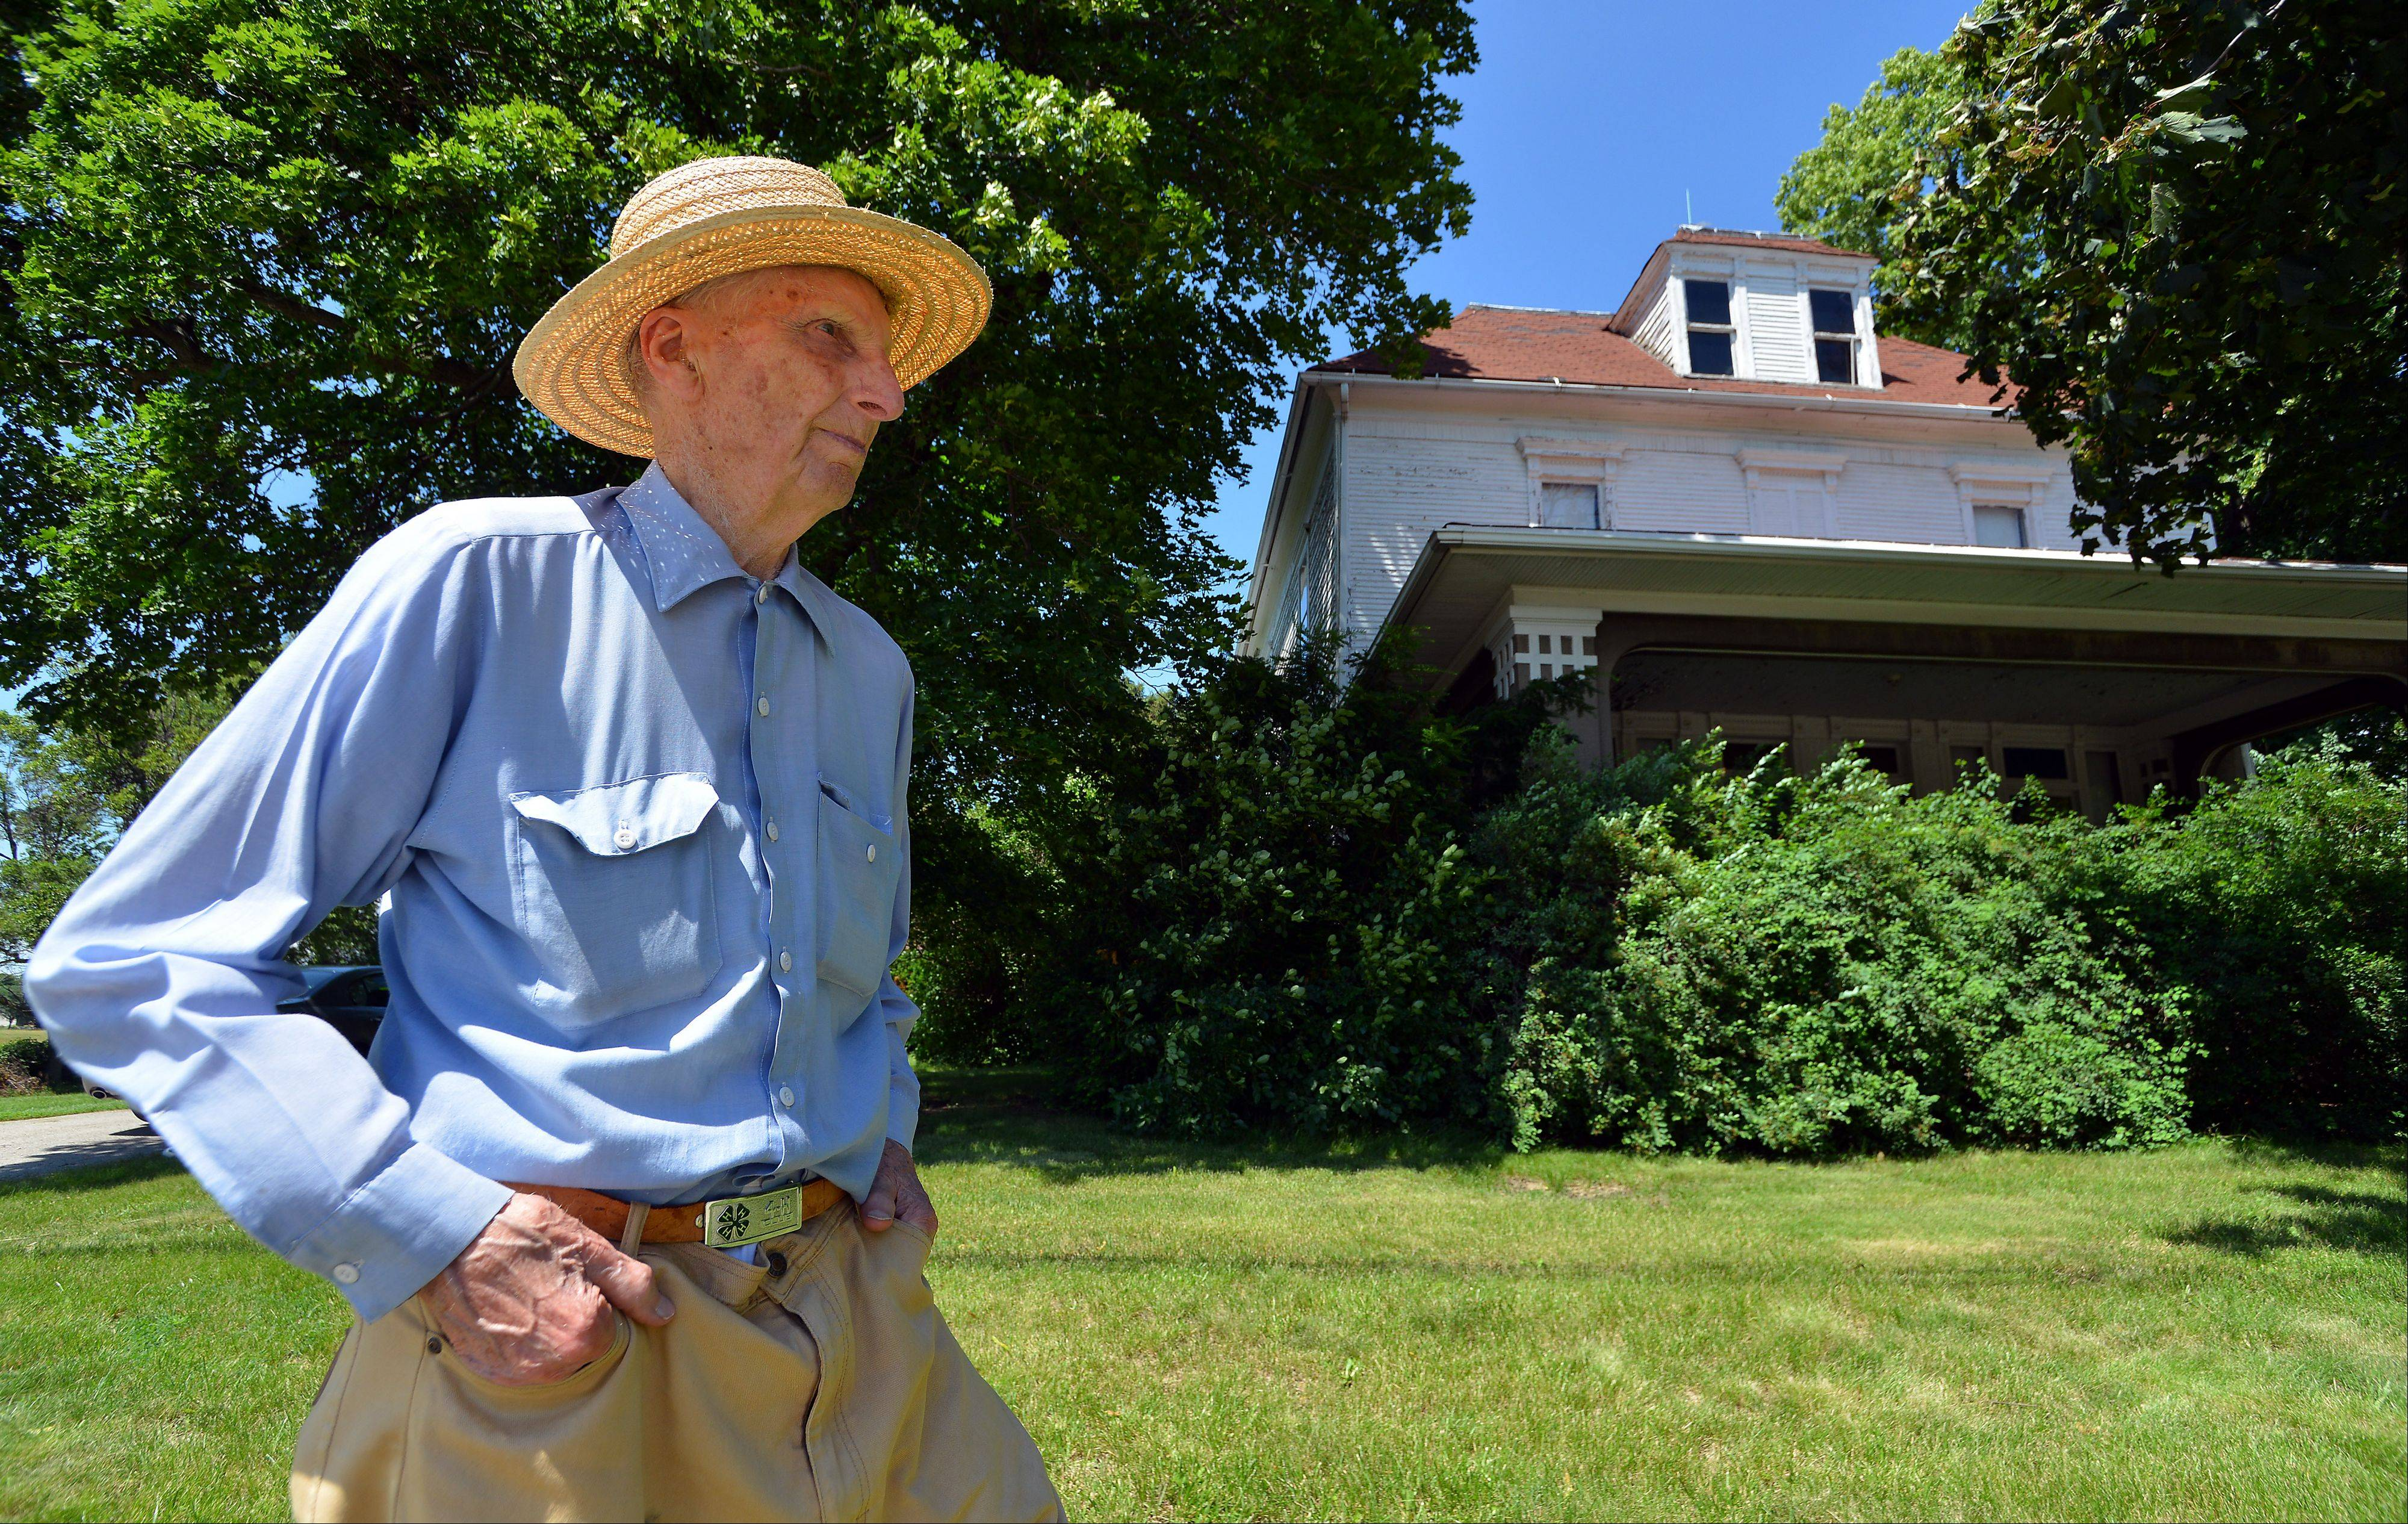 Harold Bergman, 97, of Hoffman Estates stands in front of the home in which he was born. He's the oldest farmer in Cook County. The Hoffman Estates Village Board proclaimed today Harold G. Bergman Day.